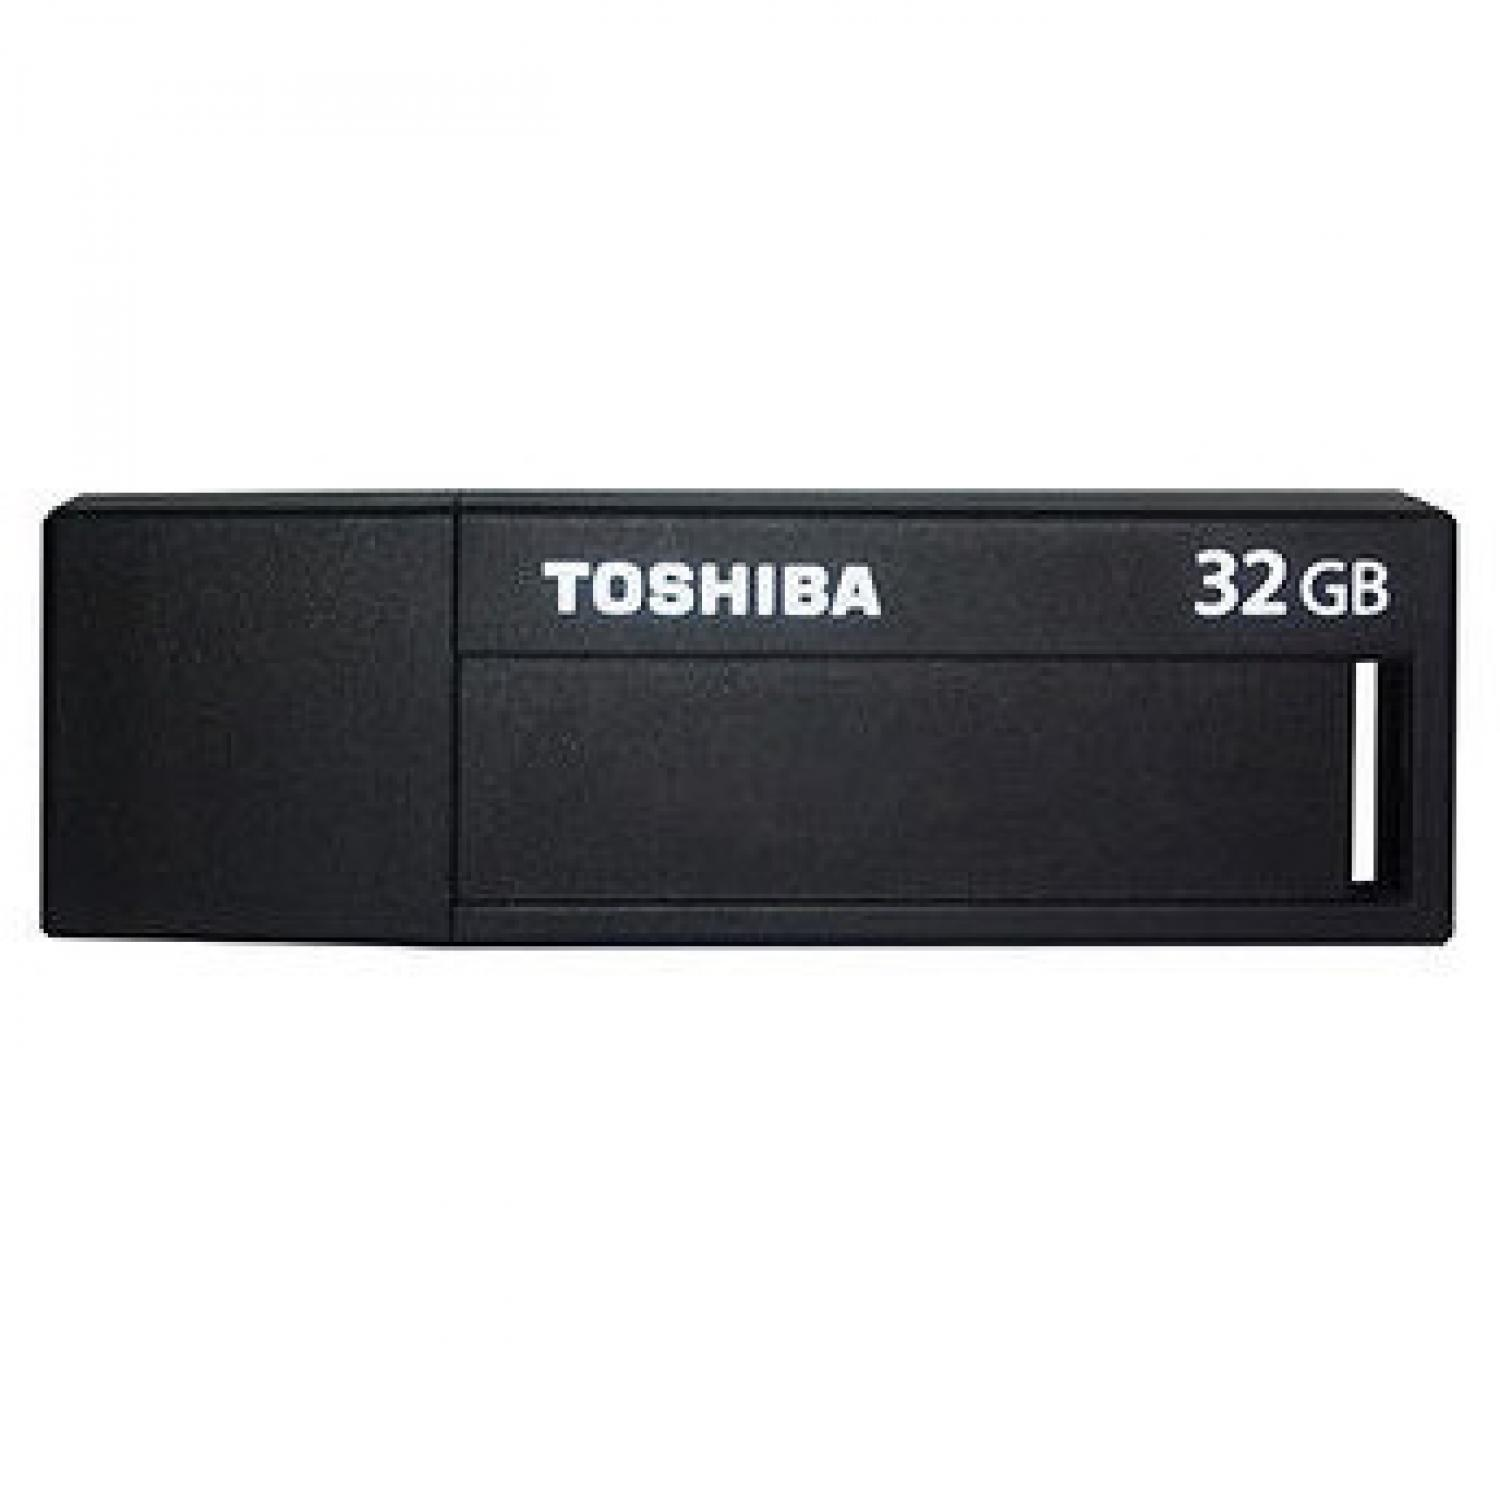 Best Seller!!! Toshiba Daichi USB Flash Drive 3.0 - V3DCH Original Asli Termurah